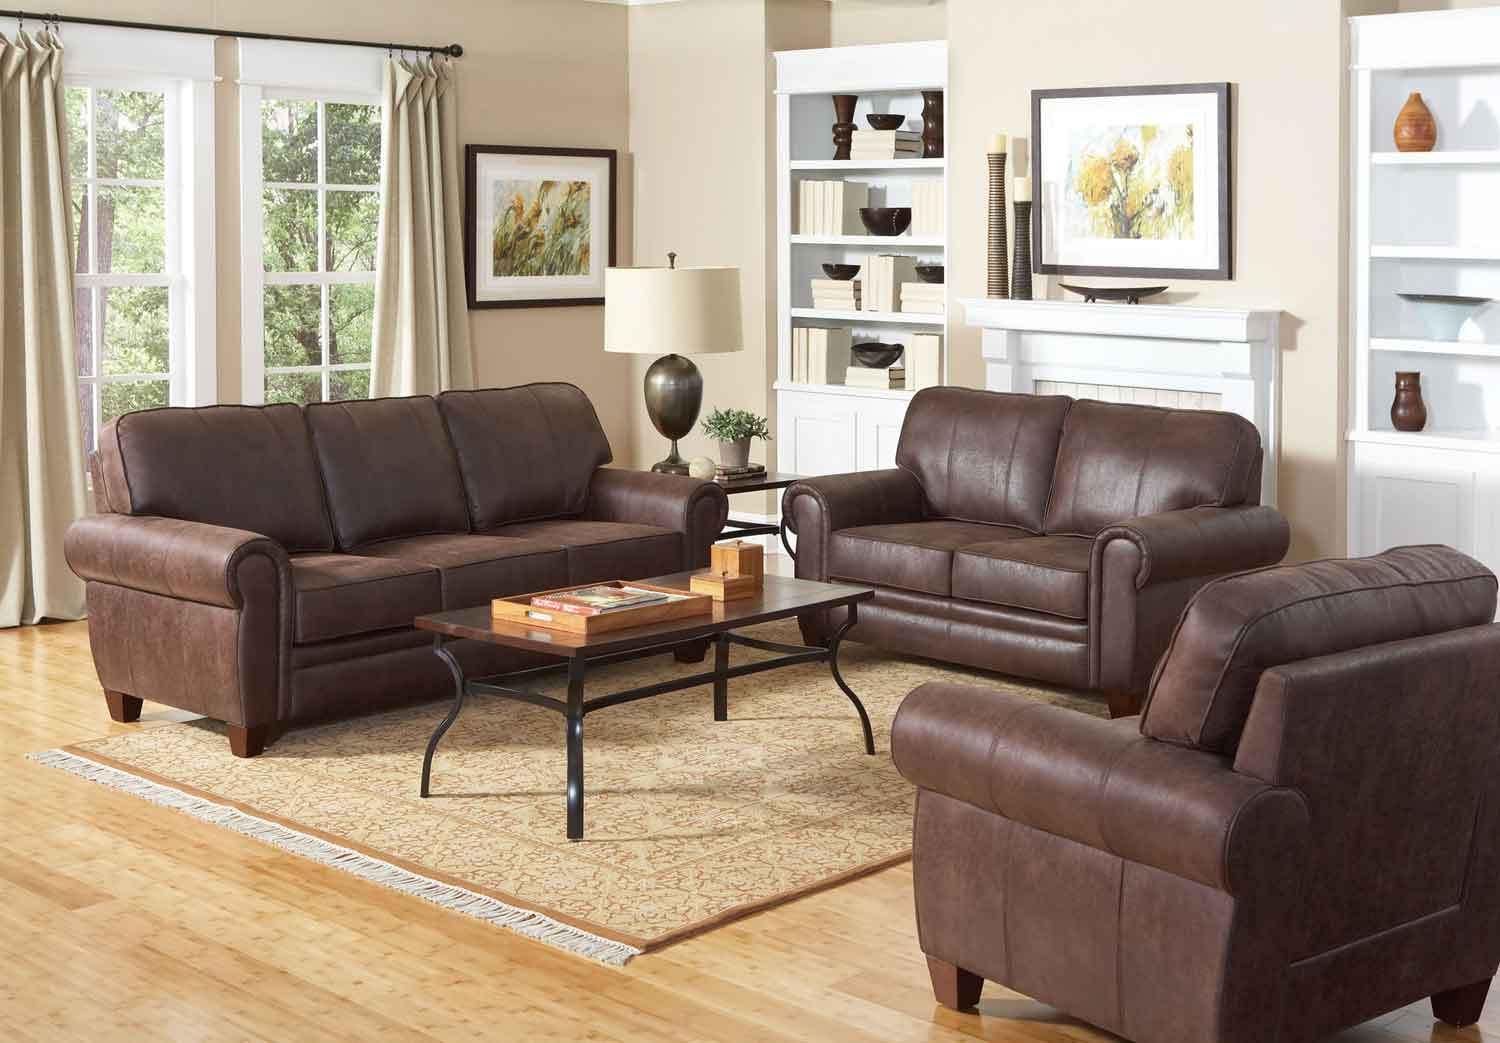 Coaster bentley living room set brown